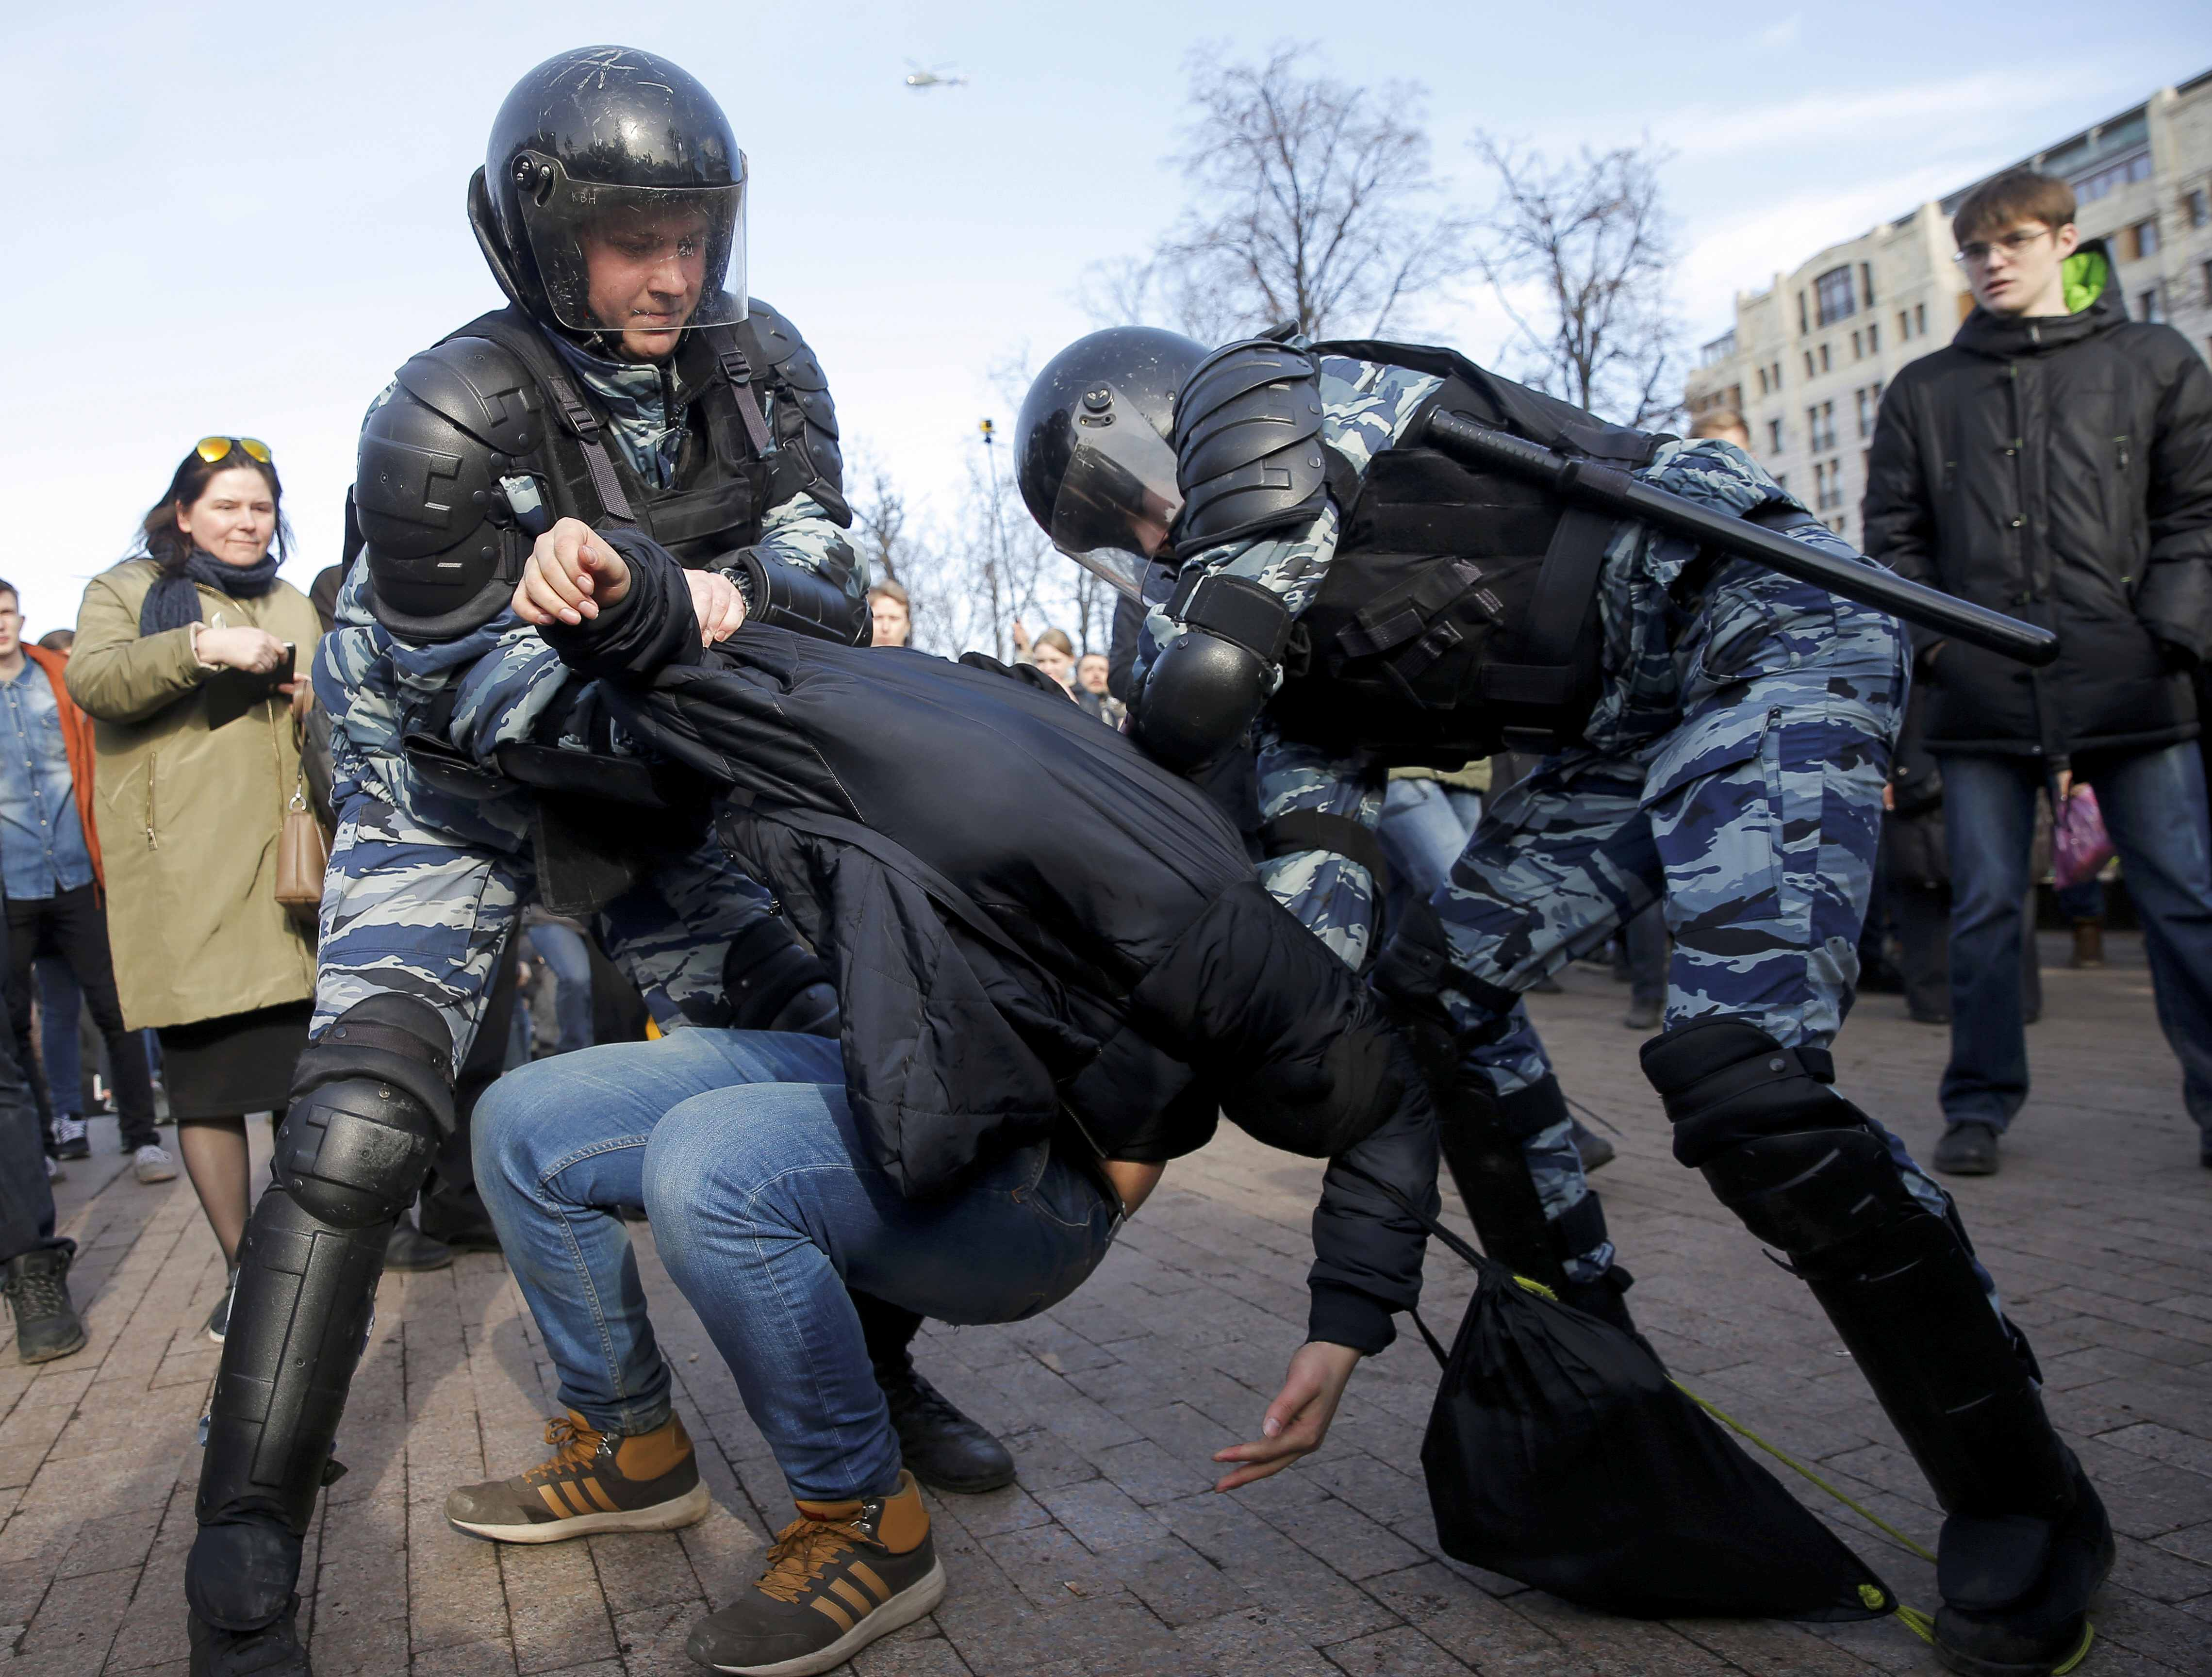 FILE PHOTO: Riot police officers detain an opposition supporter during a rally in Moscow, Russia March 26, 2017. REUTERS/Maxim Shemetov/File Photo